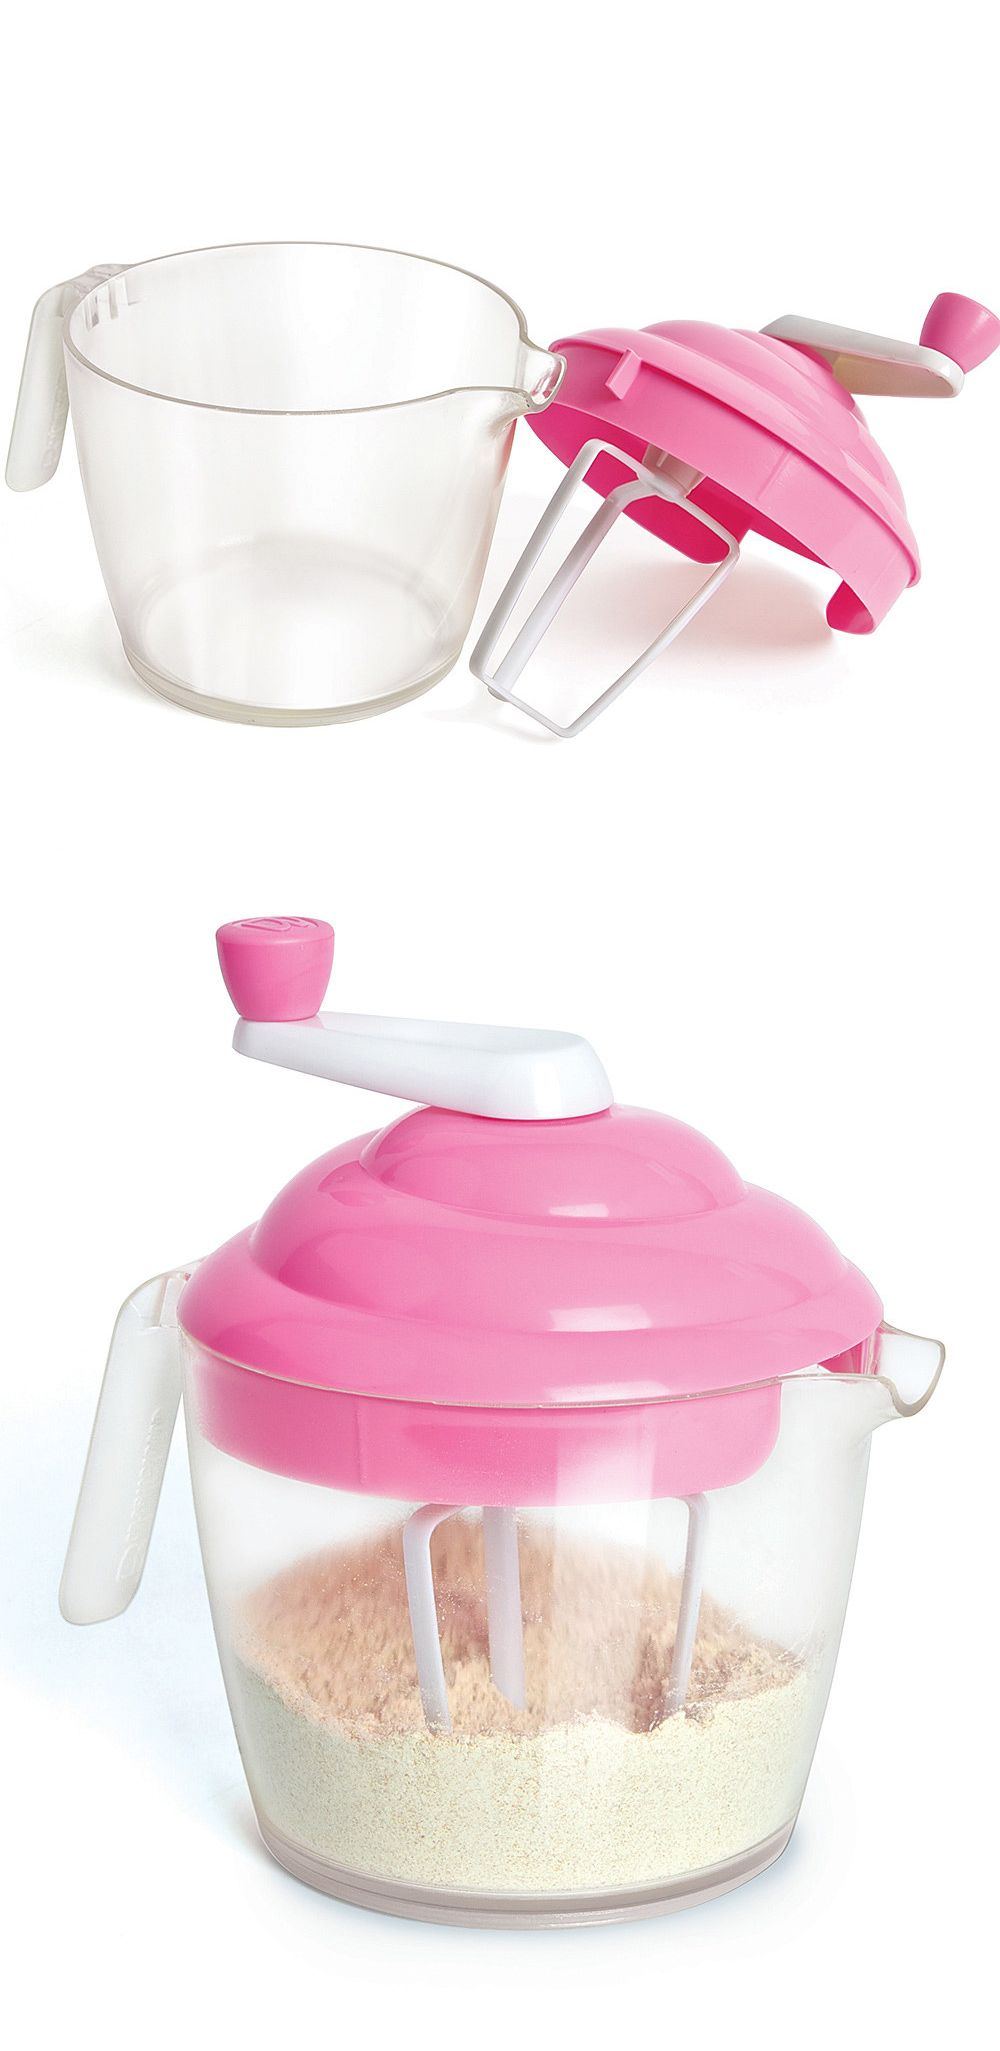 Cupcake Shaped Batter Mixer #product_design #kitchen